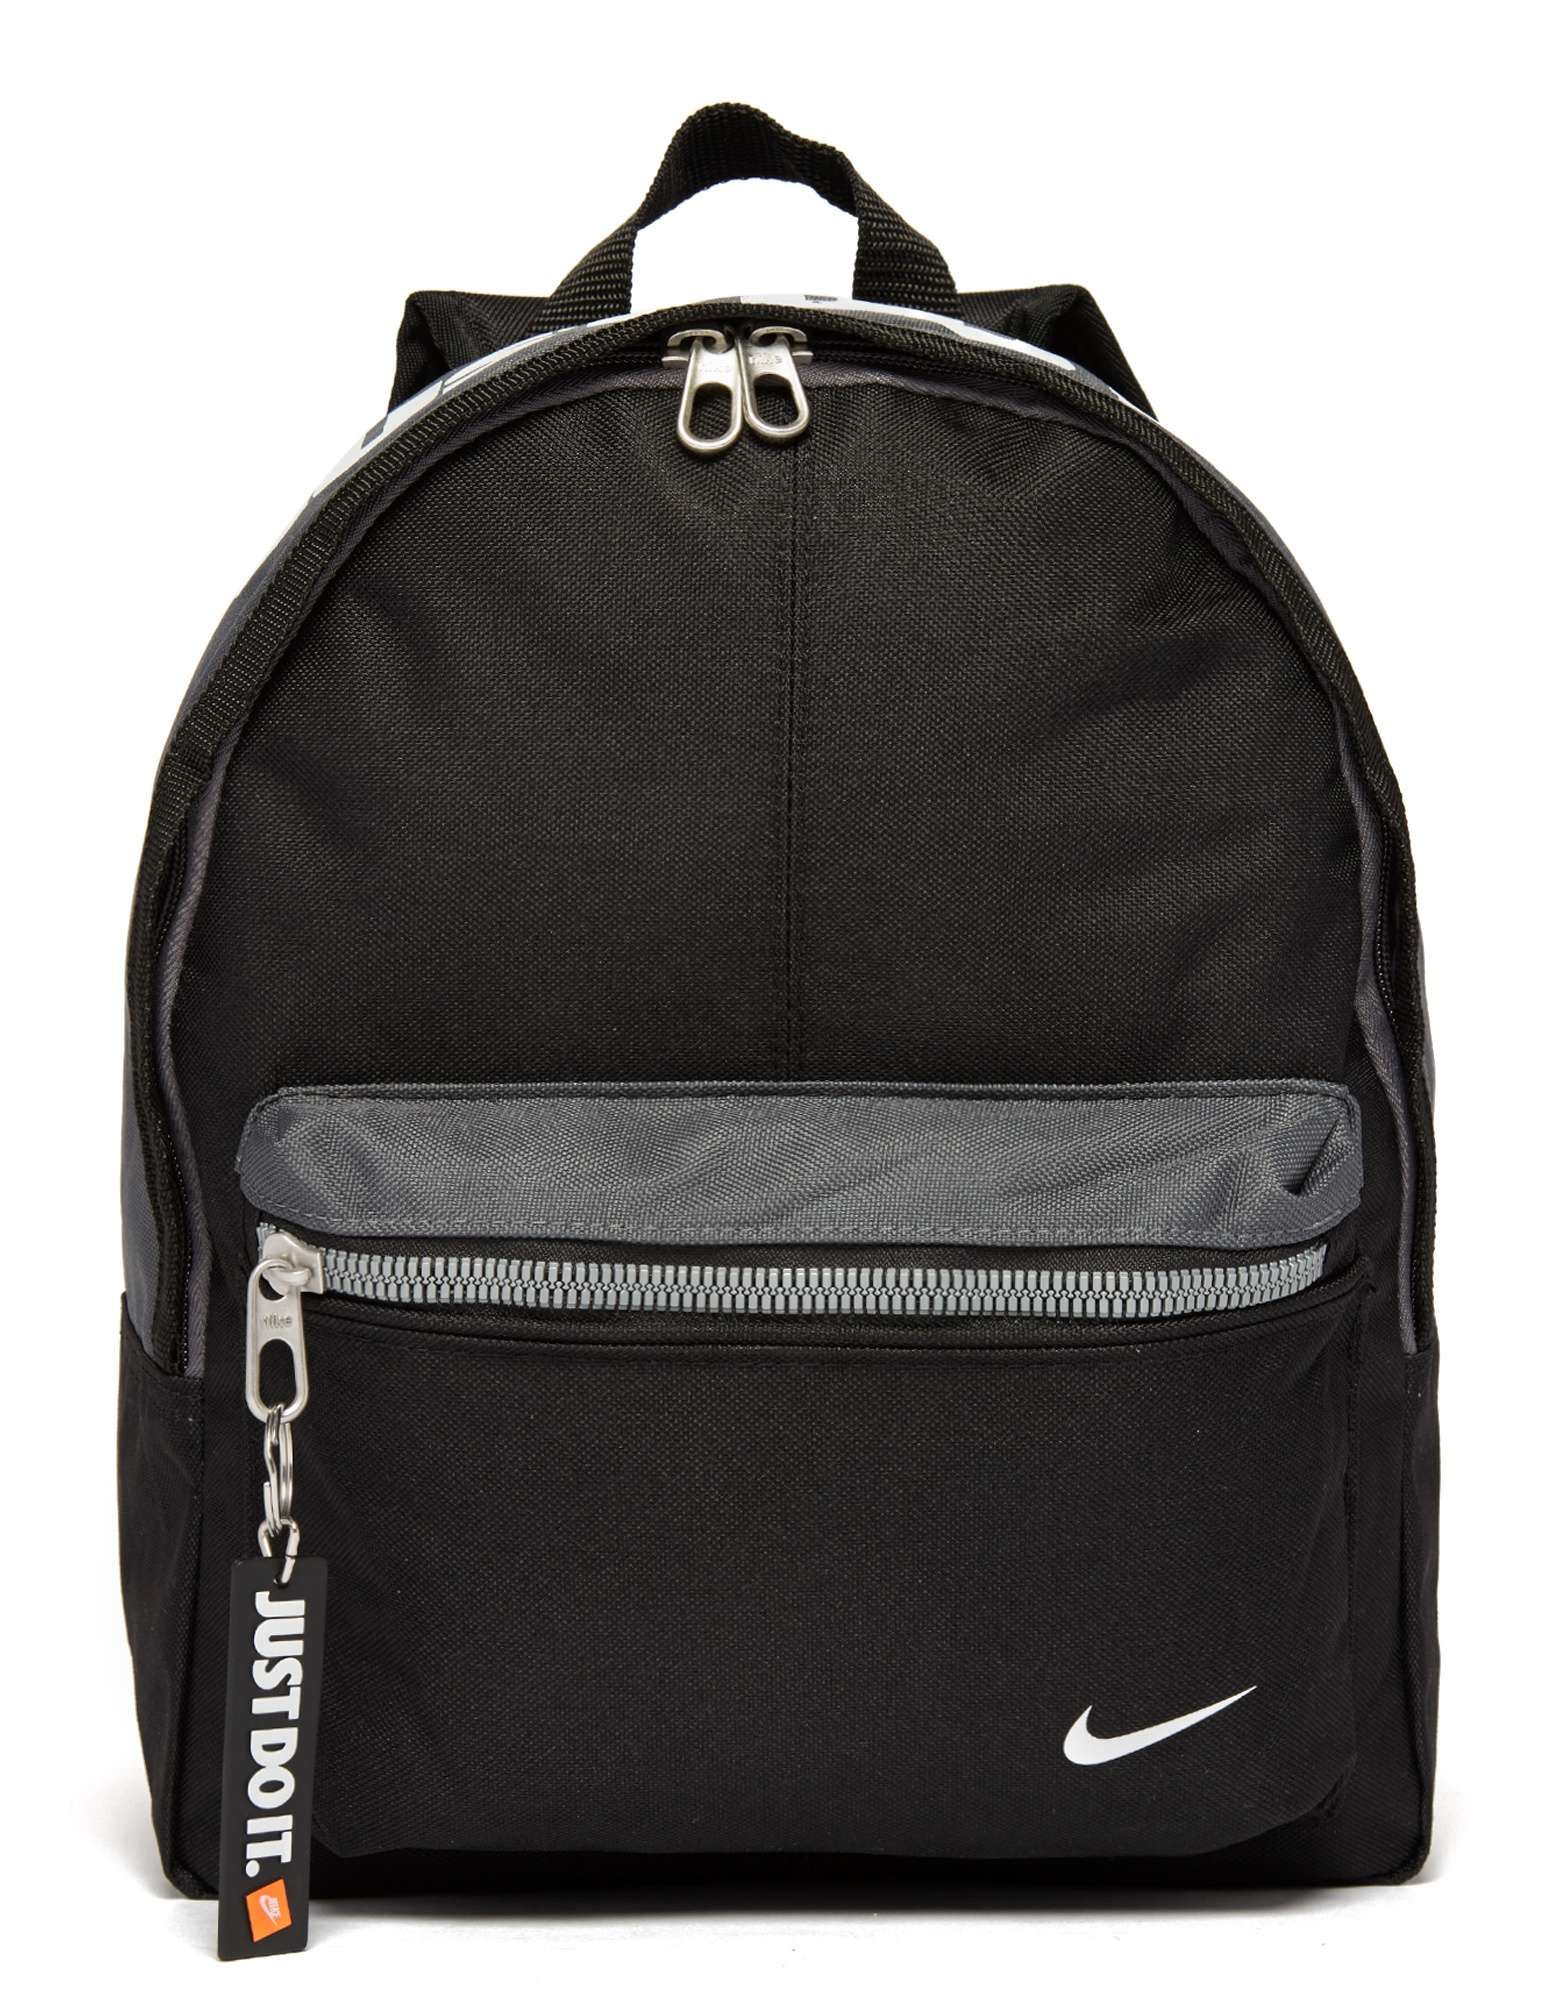 594a234ee8fe Nike Just Do It Mini Backpack - find out more on our site. Find the ...